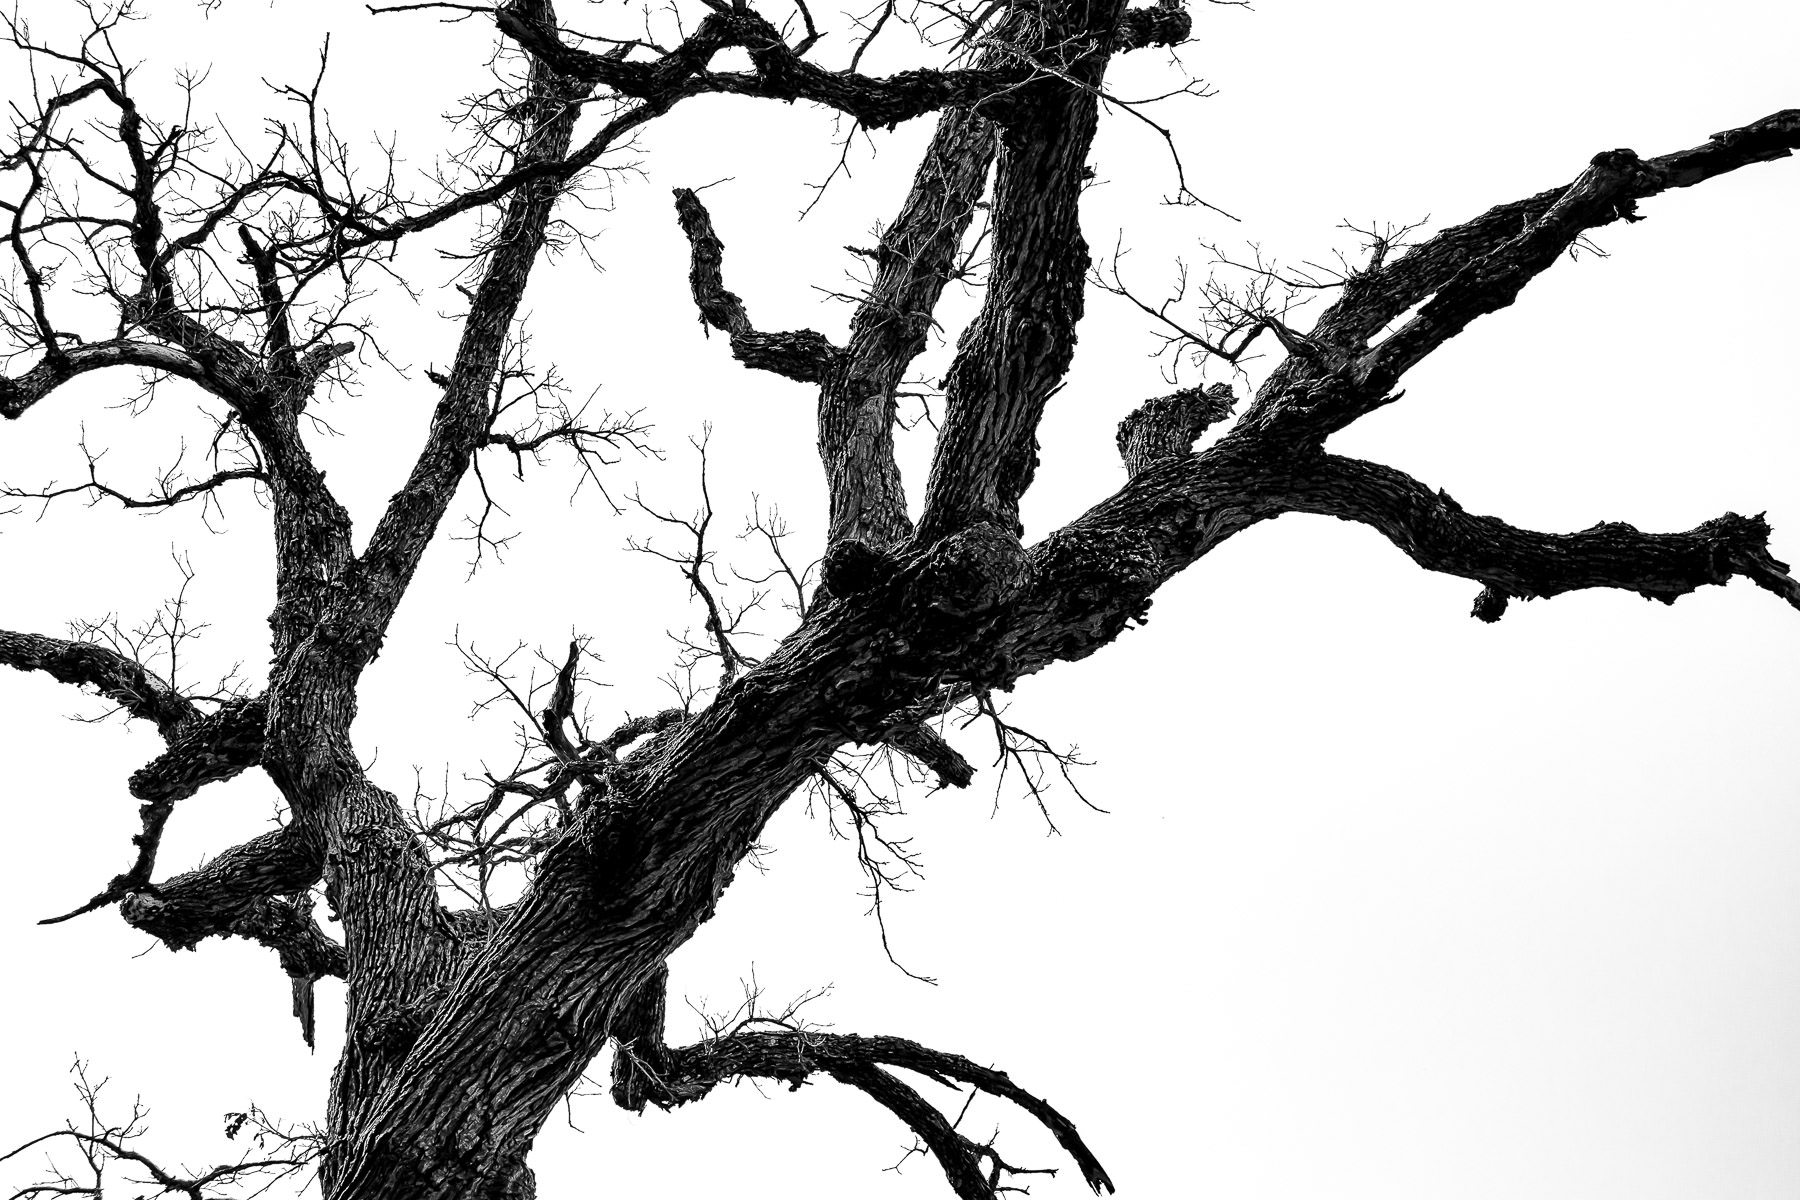 A dead, leafless tree silhouetted by the overcast North Texas sky at Dinosaur Valley State Park.